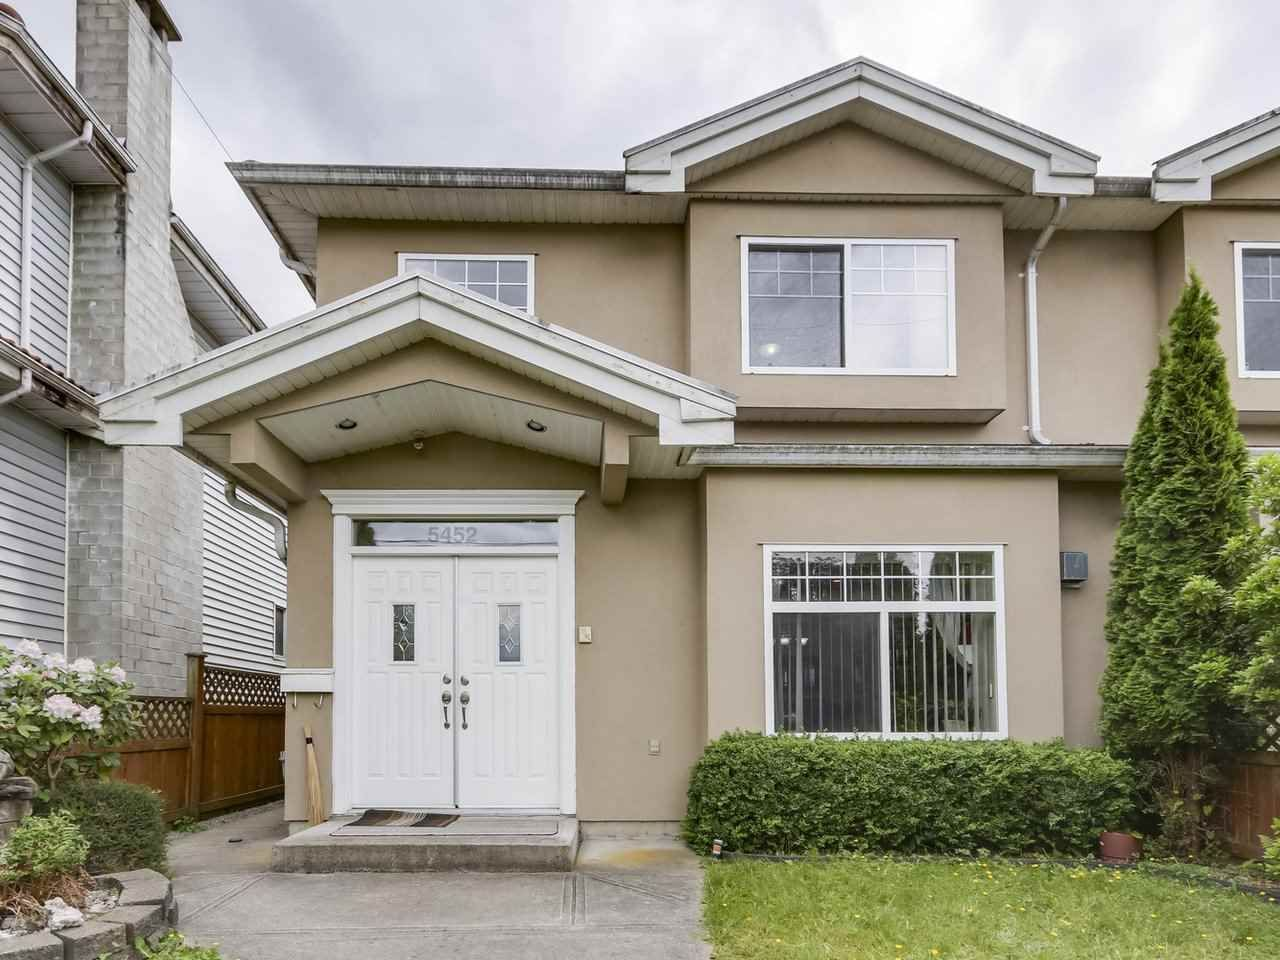 Main Photo: 5452 MANOR STREET in : Central BN 1/2 Duplex for sale : MLS®# R2358736